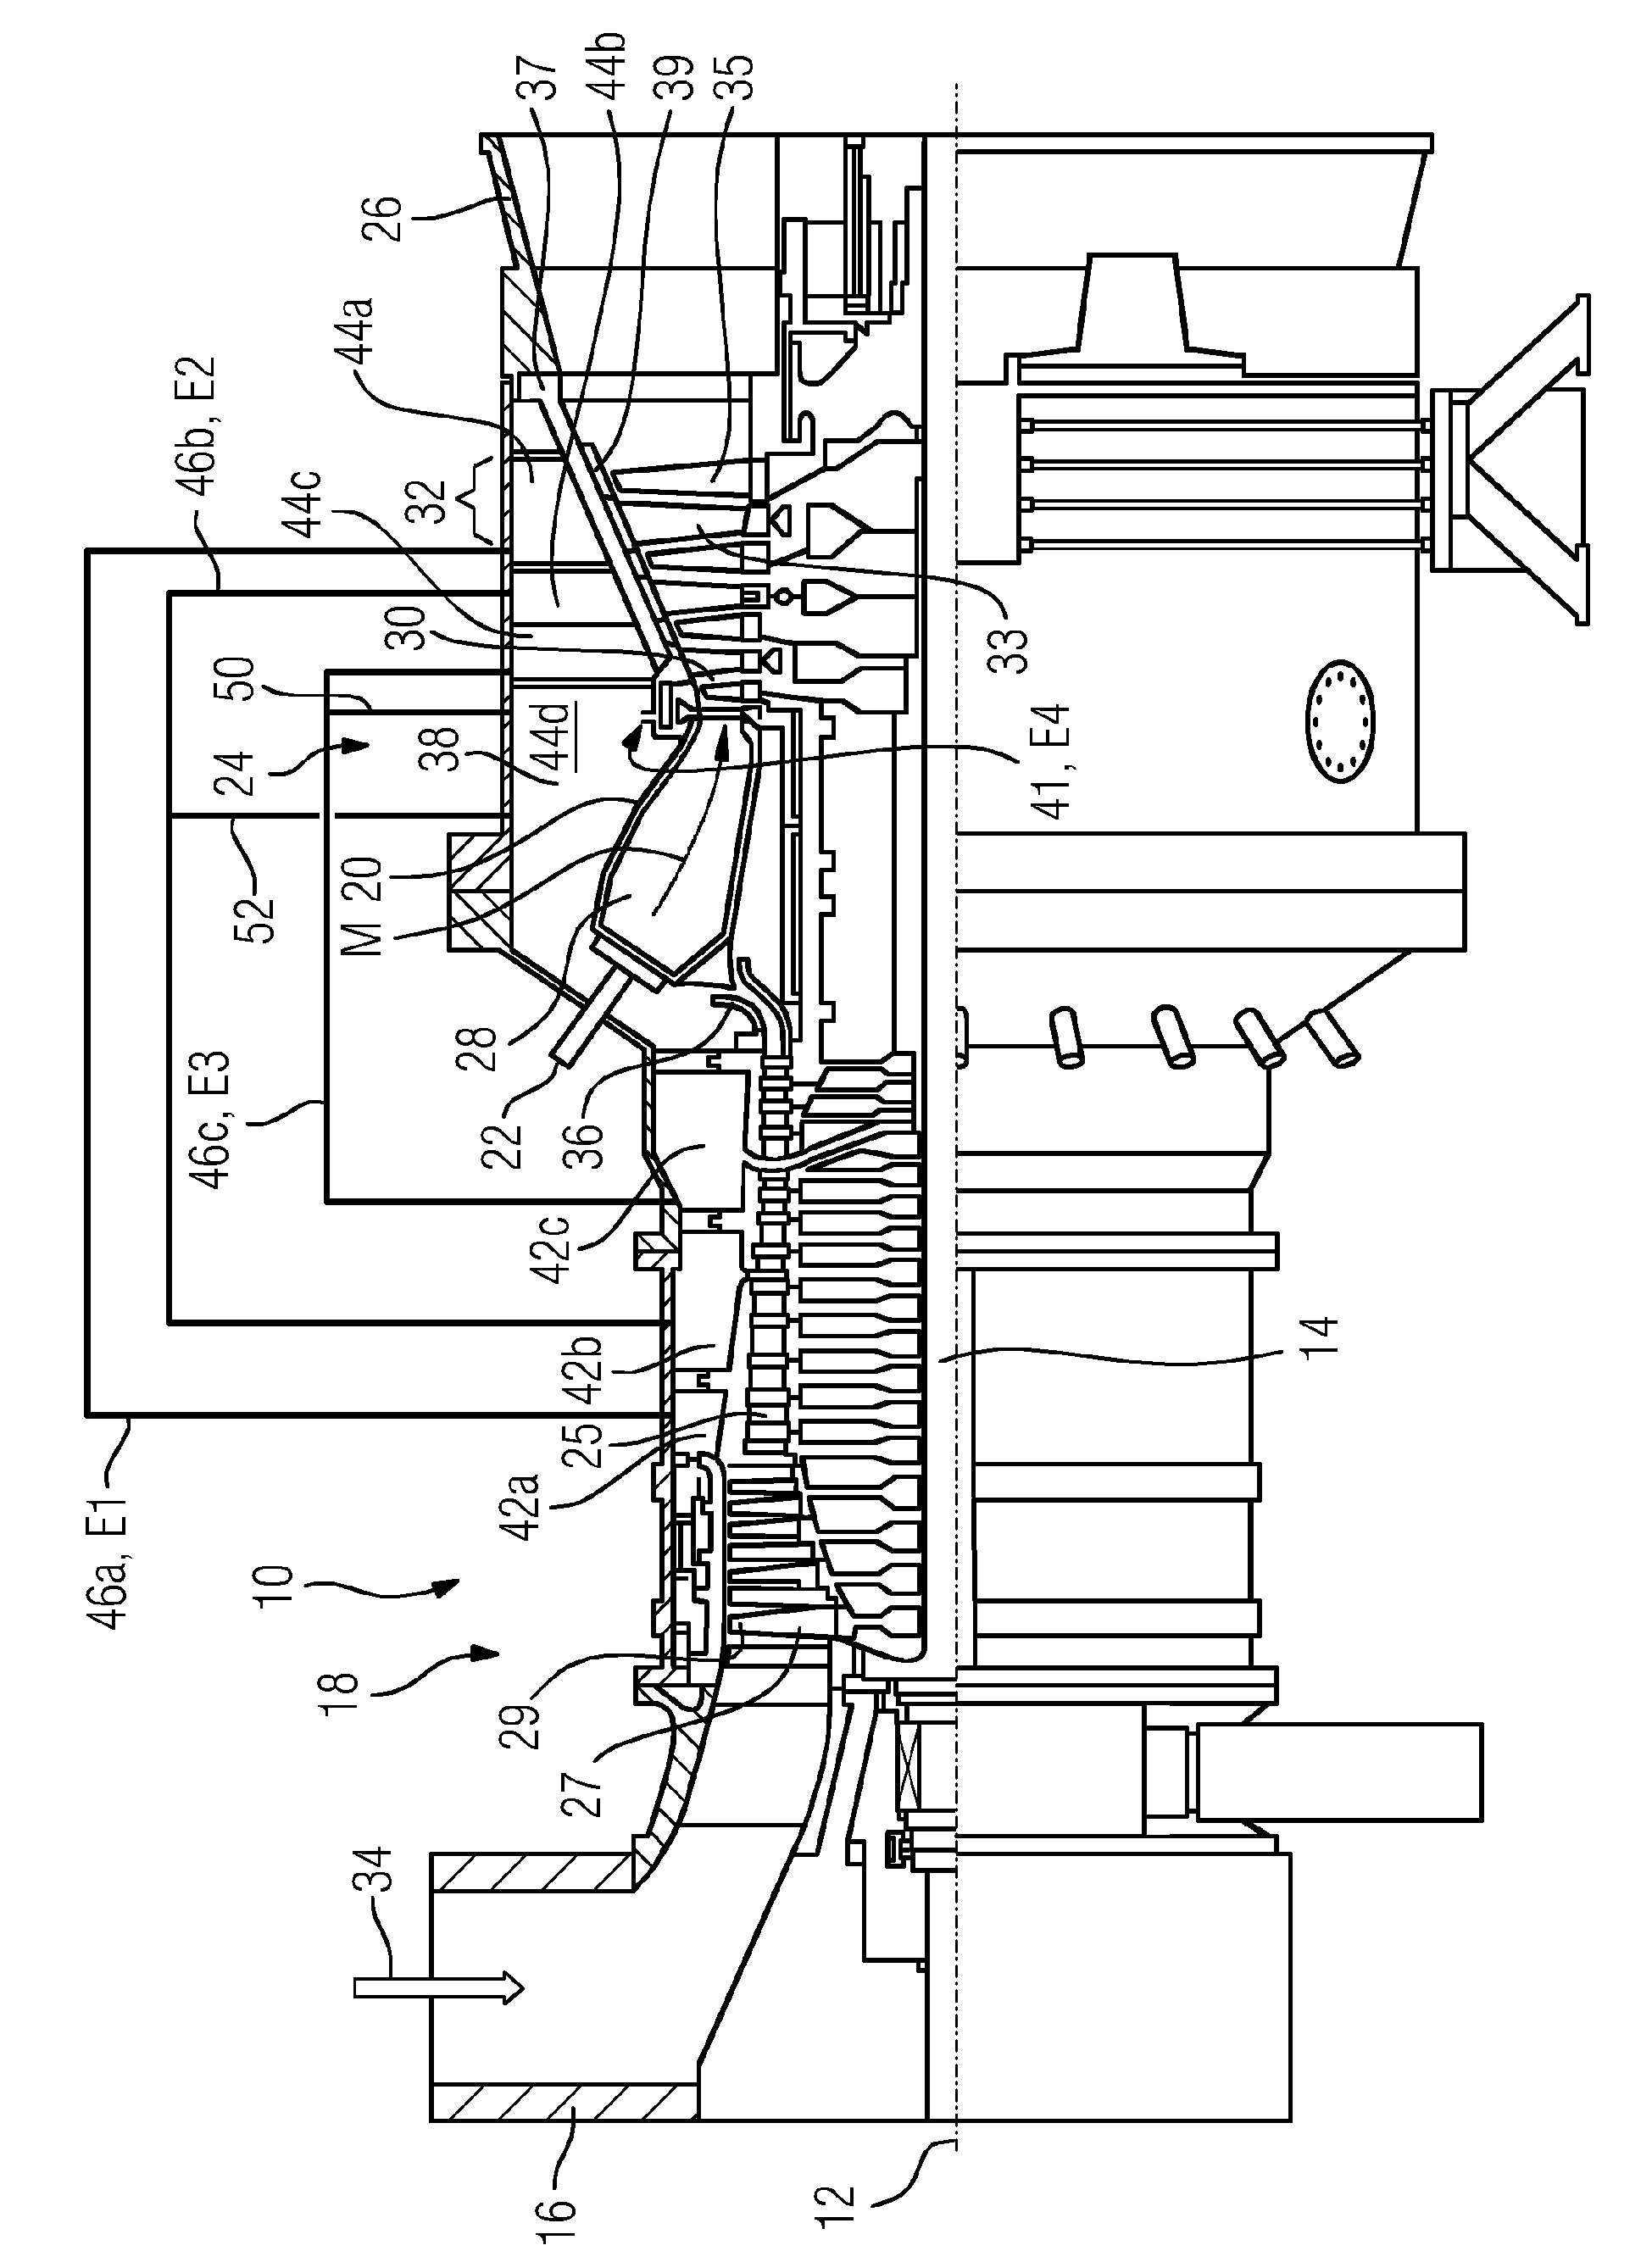 Patent EP A1 Method for operating a stationary gas turbine